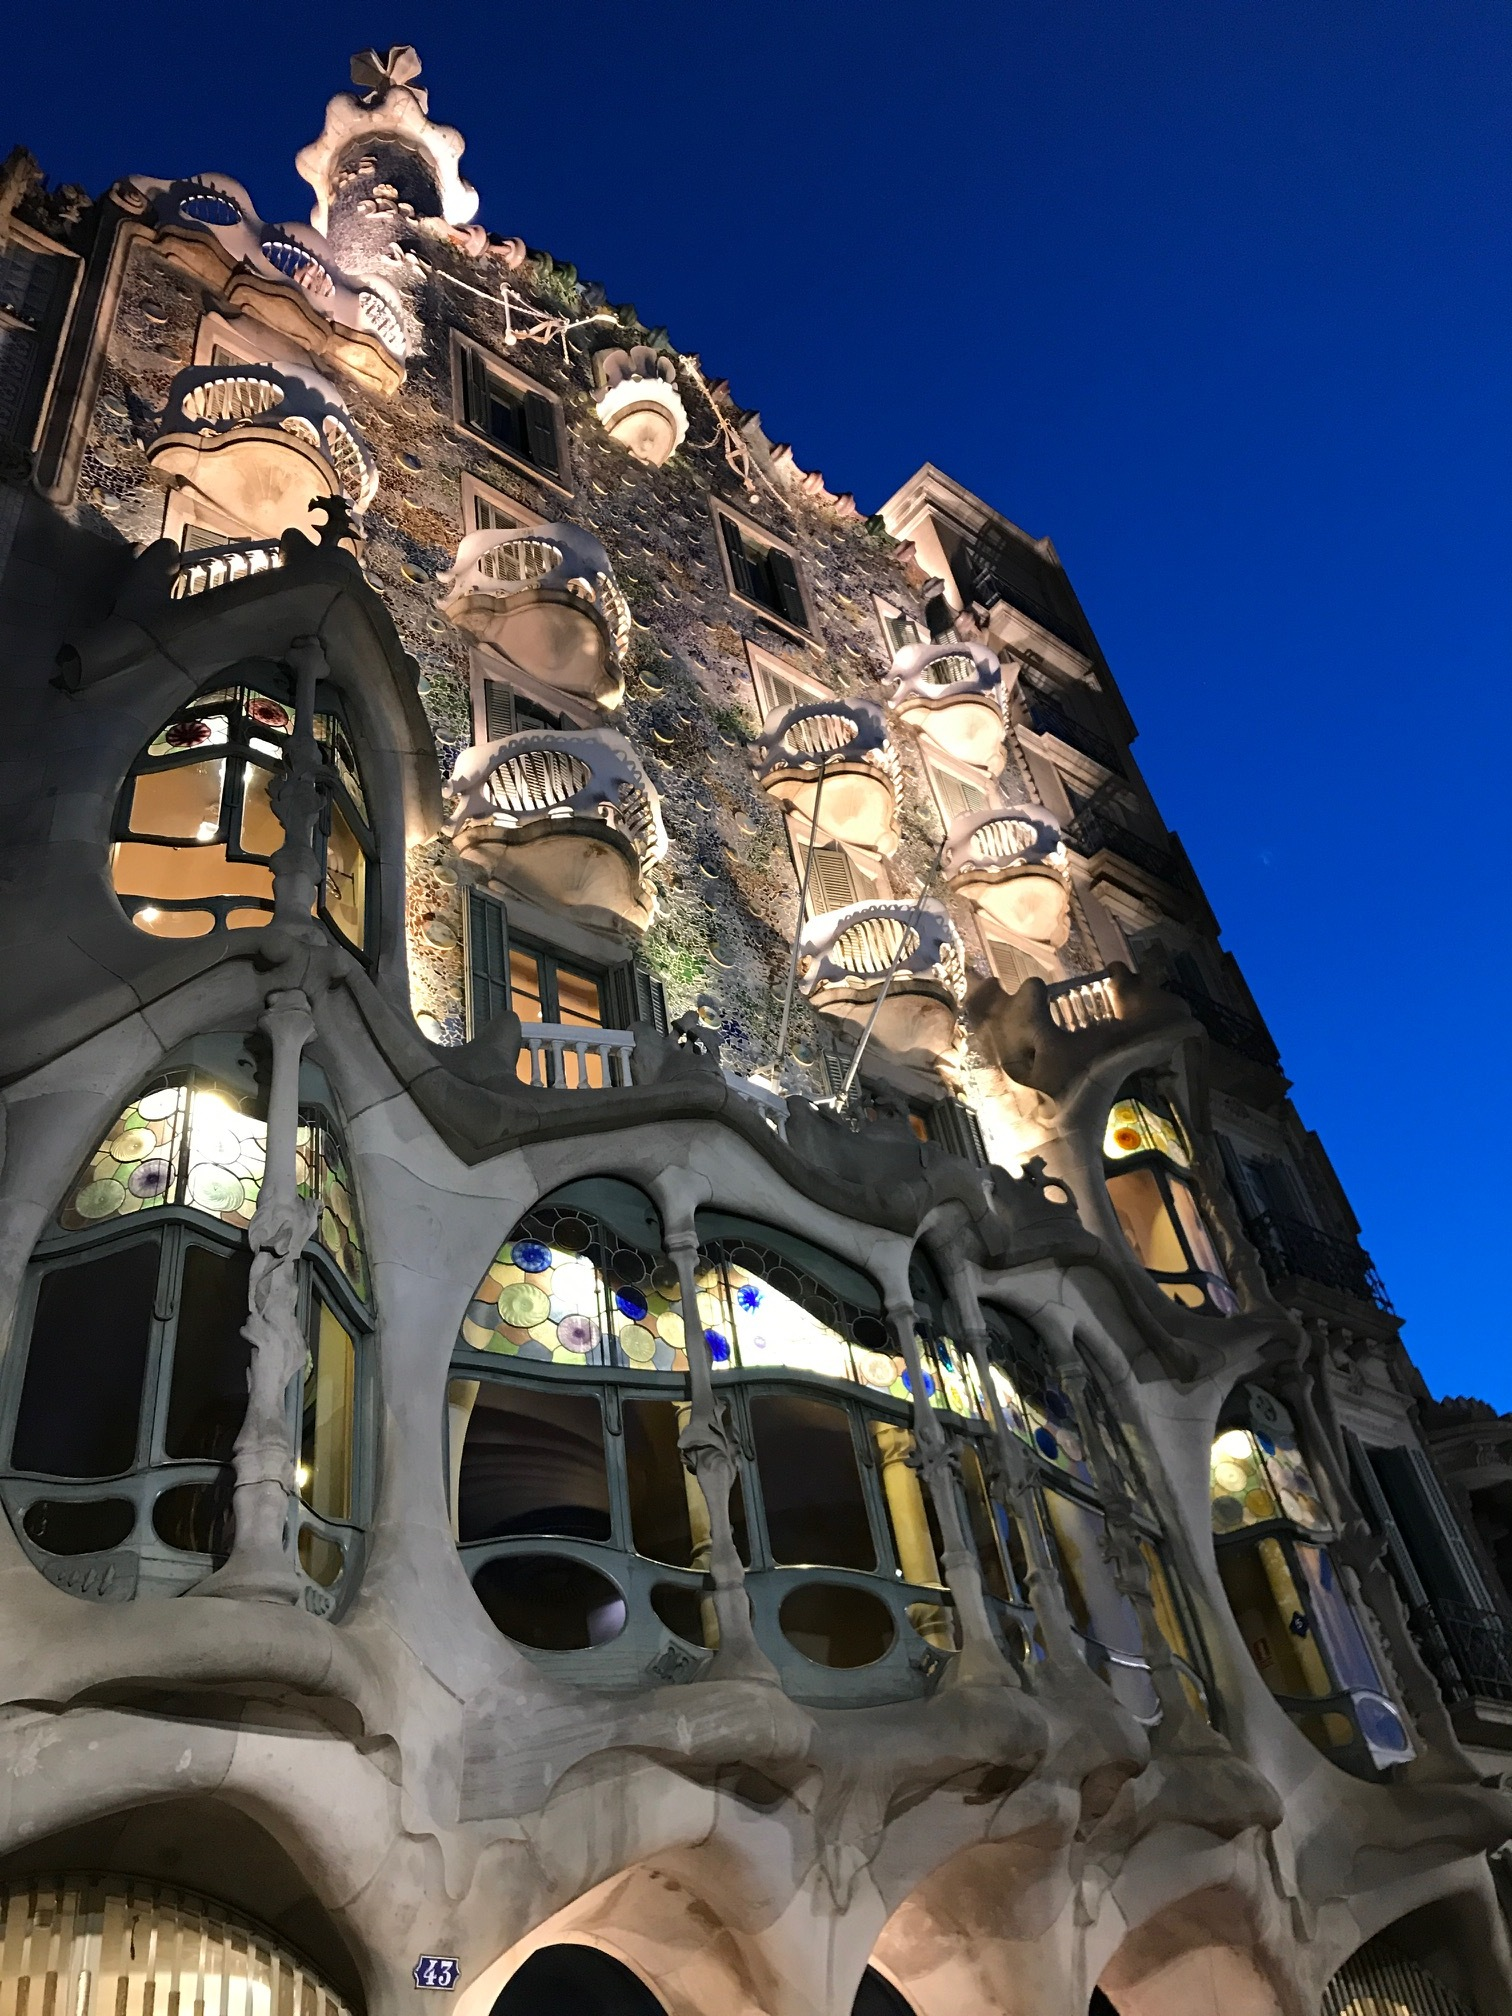 Gaudi's Casa Batlló at night